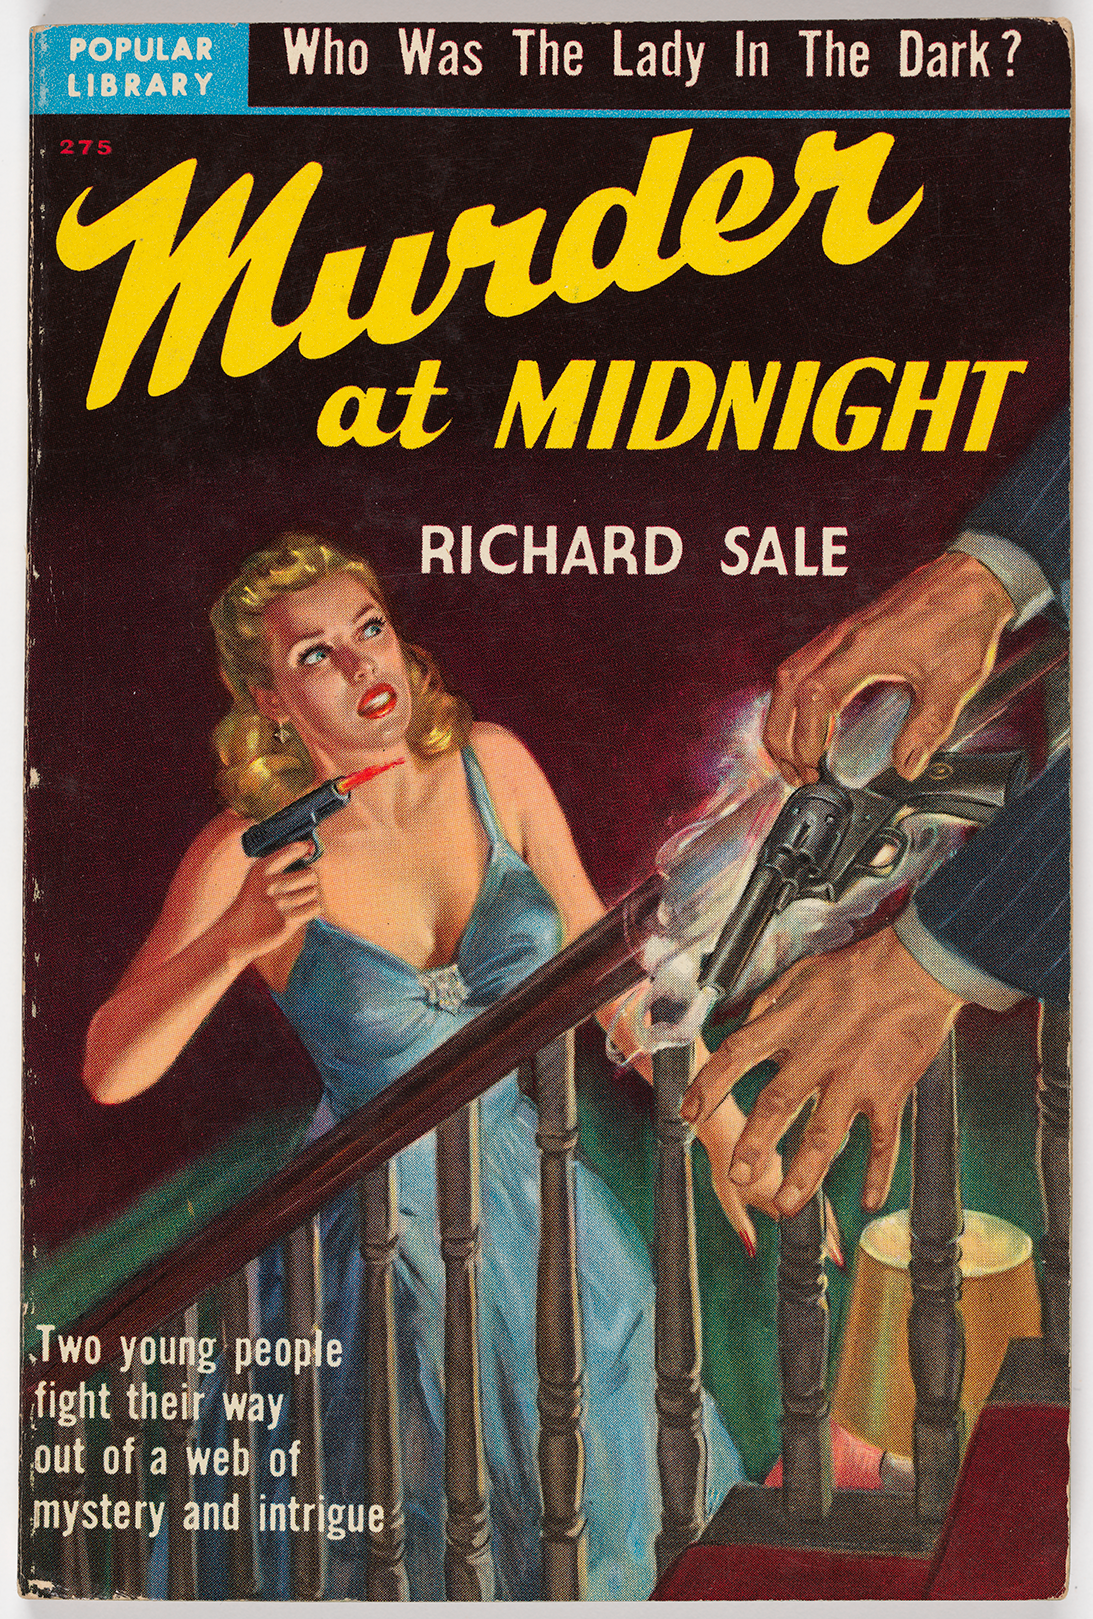 "This novel by Richard Sale was published by Popular Library with the tagline ""Who was the lady in the dark?"" The book follows ""two young people [as they] fight their way out of a web of mystery intrigue."" The cover shows a suspicious woman creeping up a staircase with a gun in her hand. In front of her, we see a pair of male hands dropping a smoking gun."